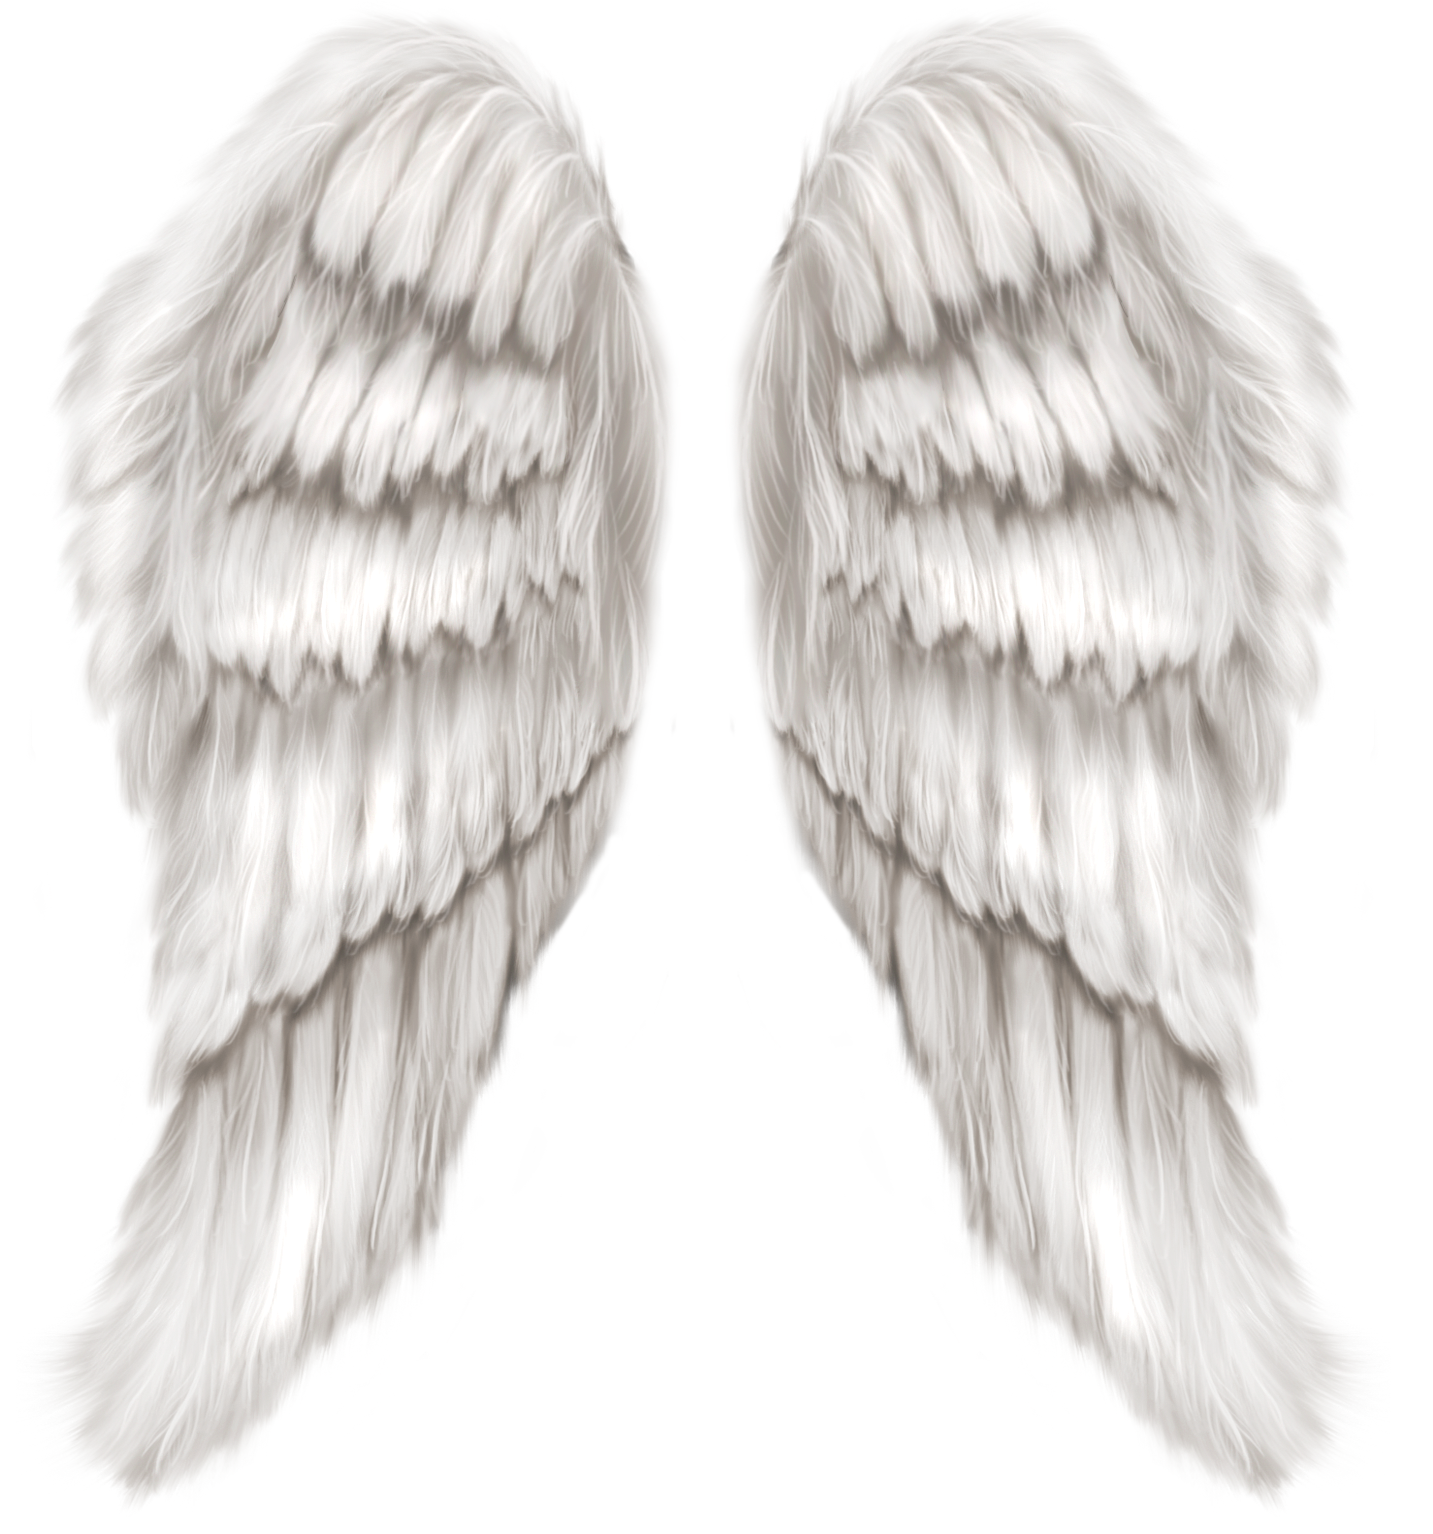 White Angel Wings Transparent PNG Clip Art Image.